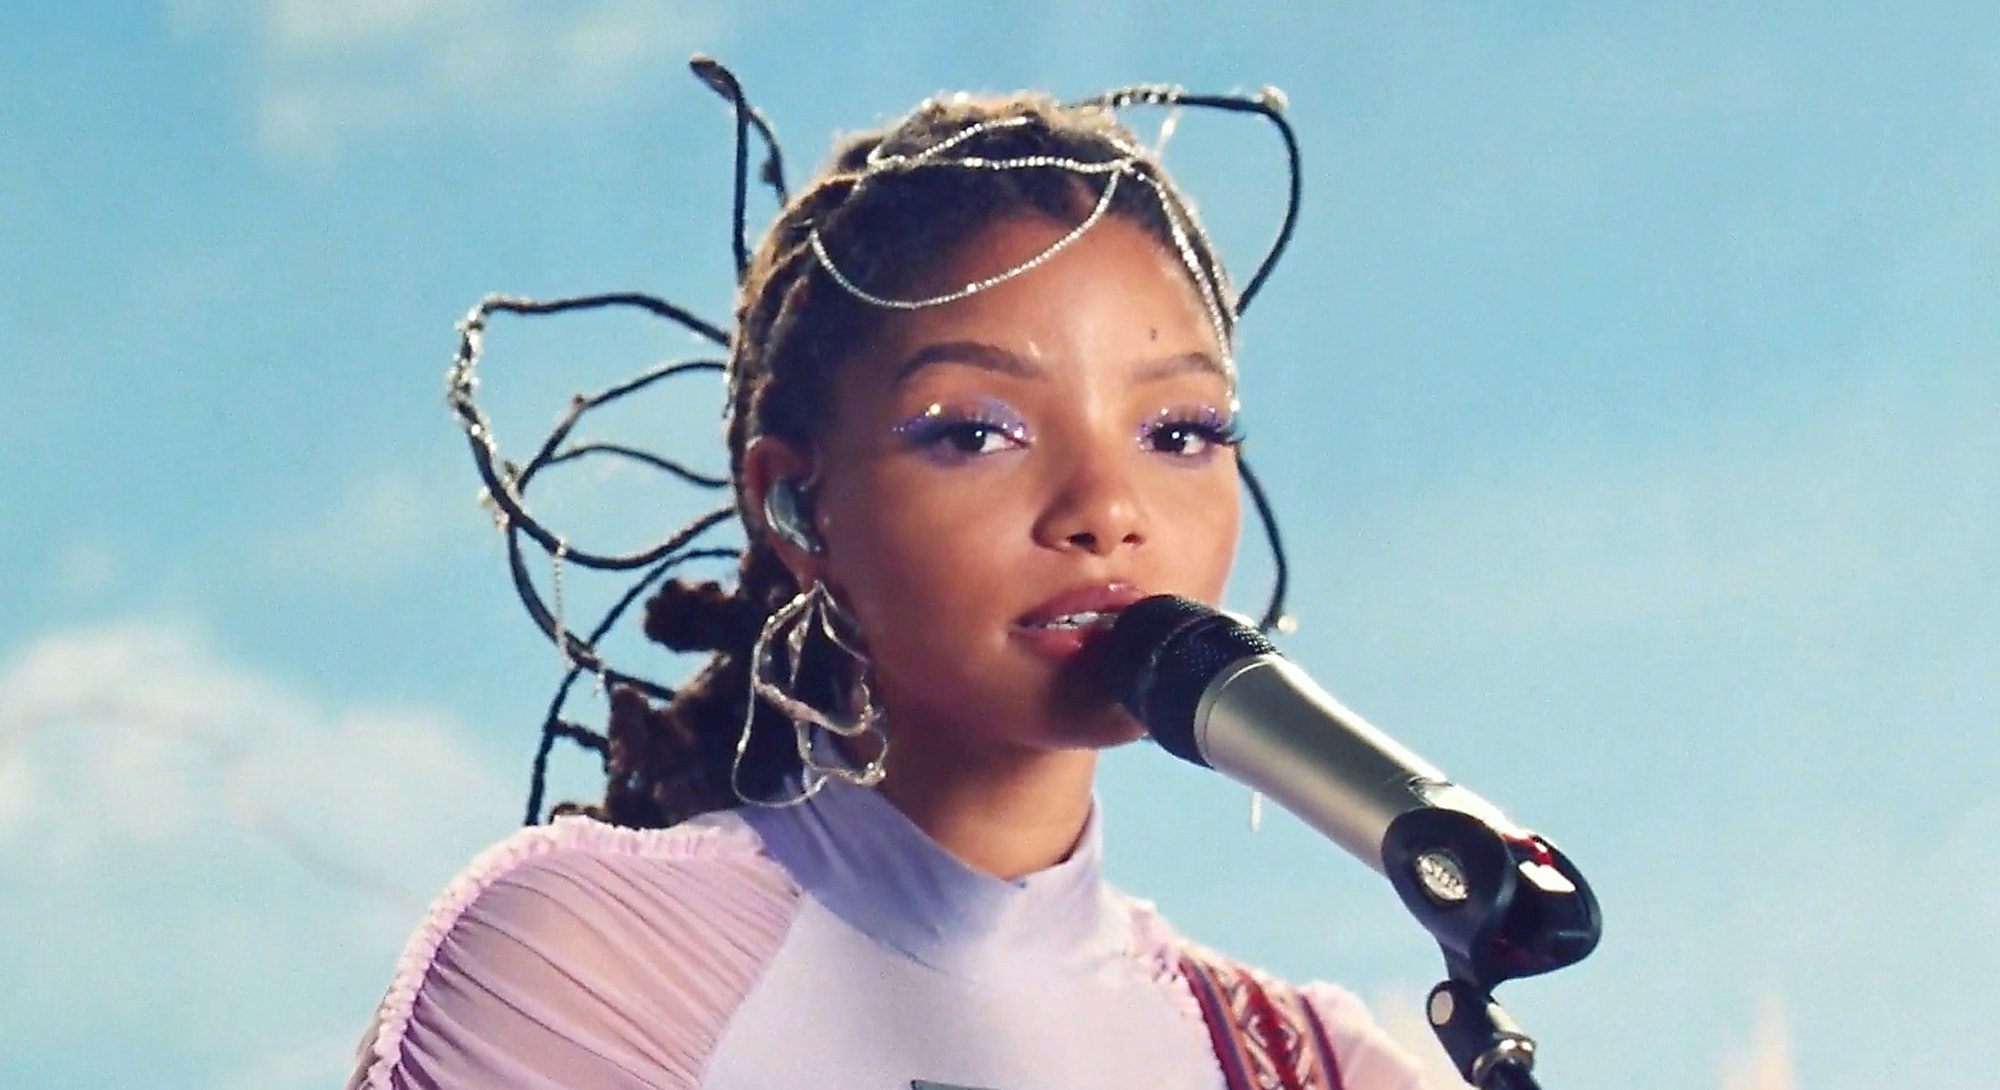 Halle Bailey of Chloe X Halle performs in 2020.